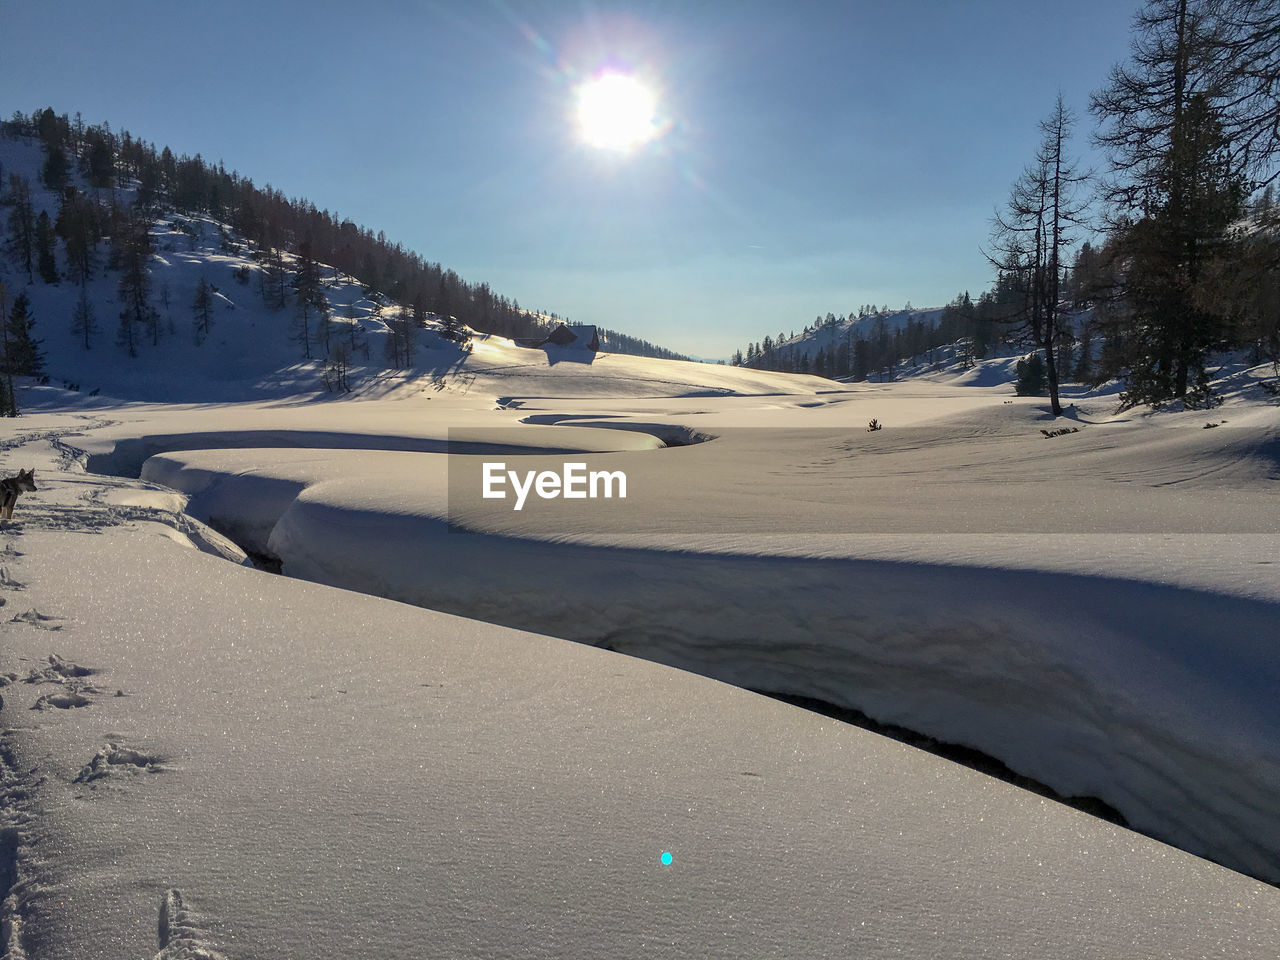 snow, winter, cold temperature, sky, sun, tranquil scene, sunlight, nature, scenics - nature, beauty in nature, tree, tranquility, lens flare, land, day, sunbeam, non-urban scene, plant, no people, bright, snowcapped mountain